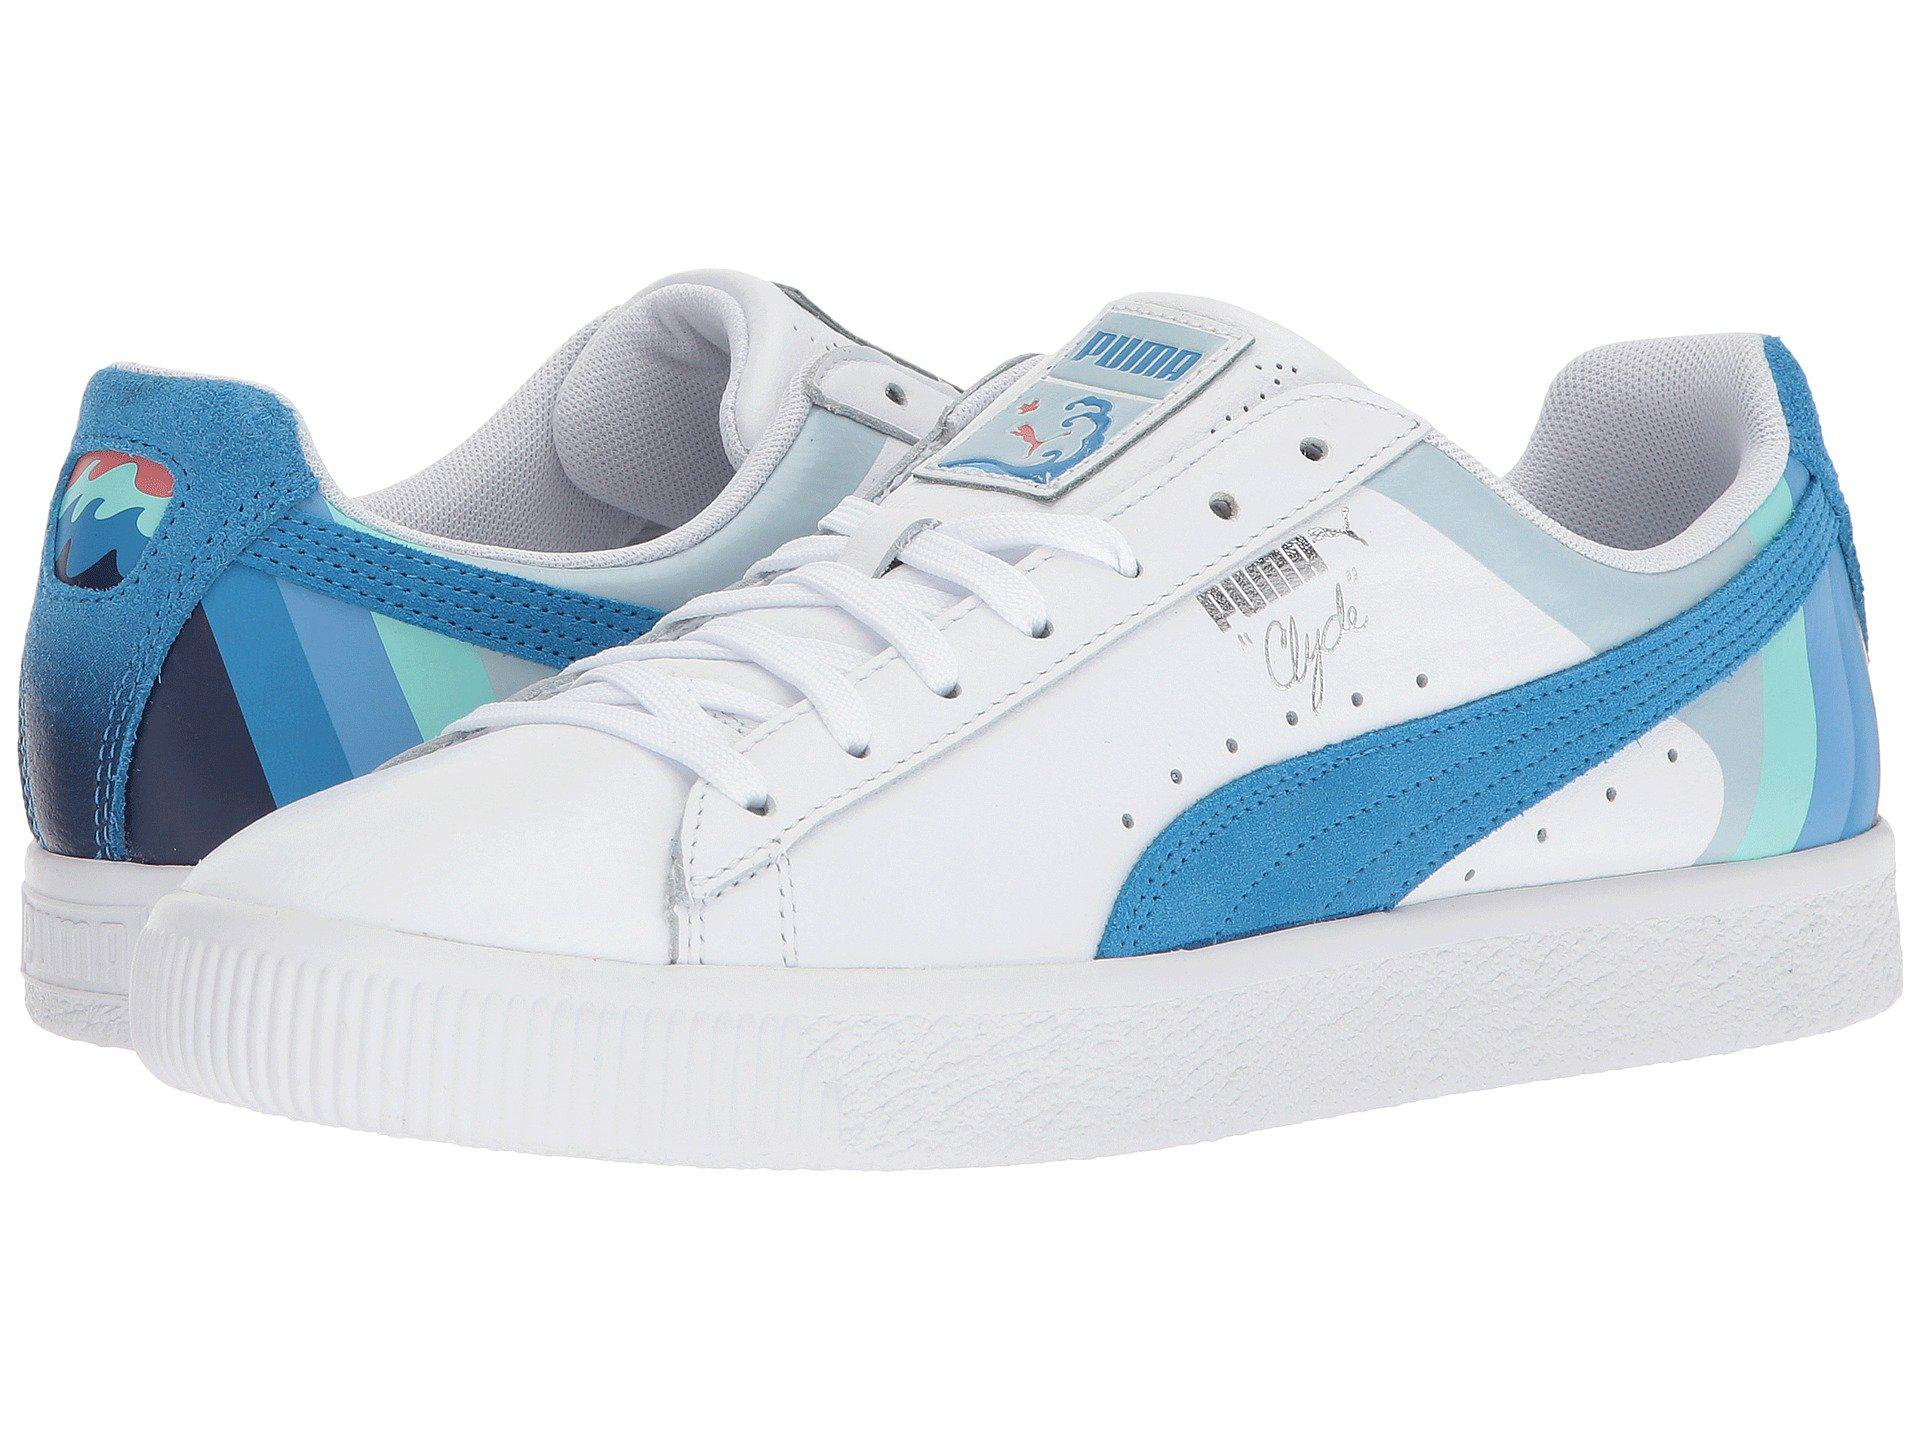 PUMA Leather Clyde - Pink Dolphin in Blue for Men - Lyst